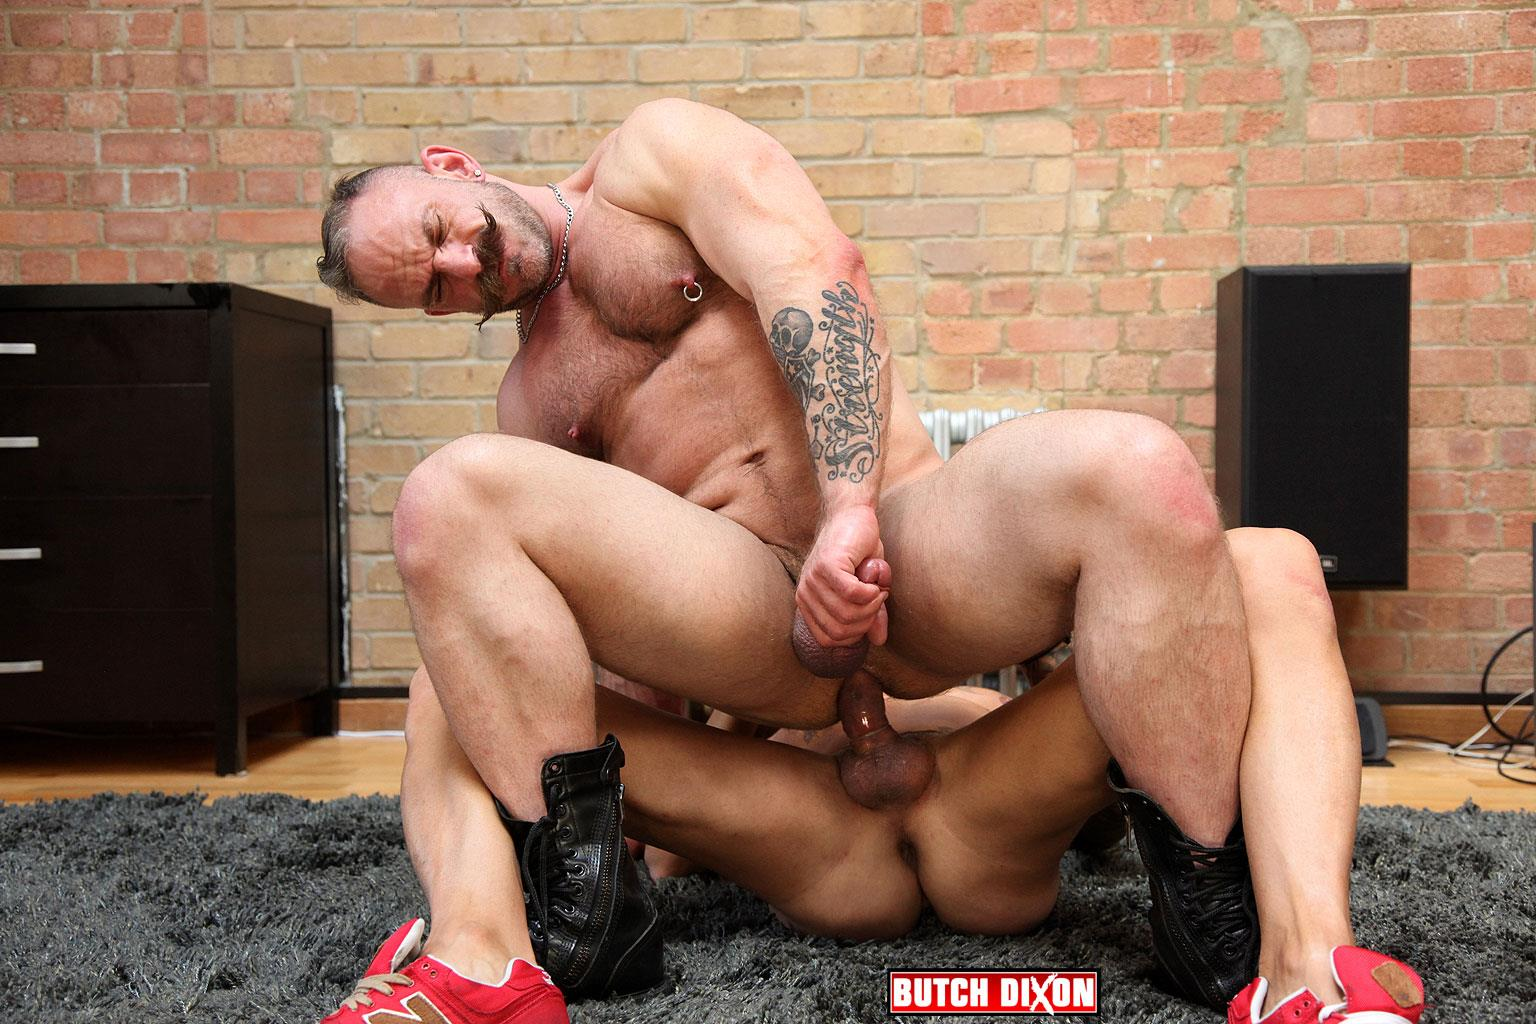 Butch Dixon Samuel Colt and Frank Valencia Hairy Muscle Daddy Getting Fucked By Latino Cock Amateur Gay Porn 15